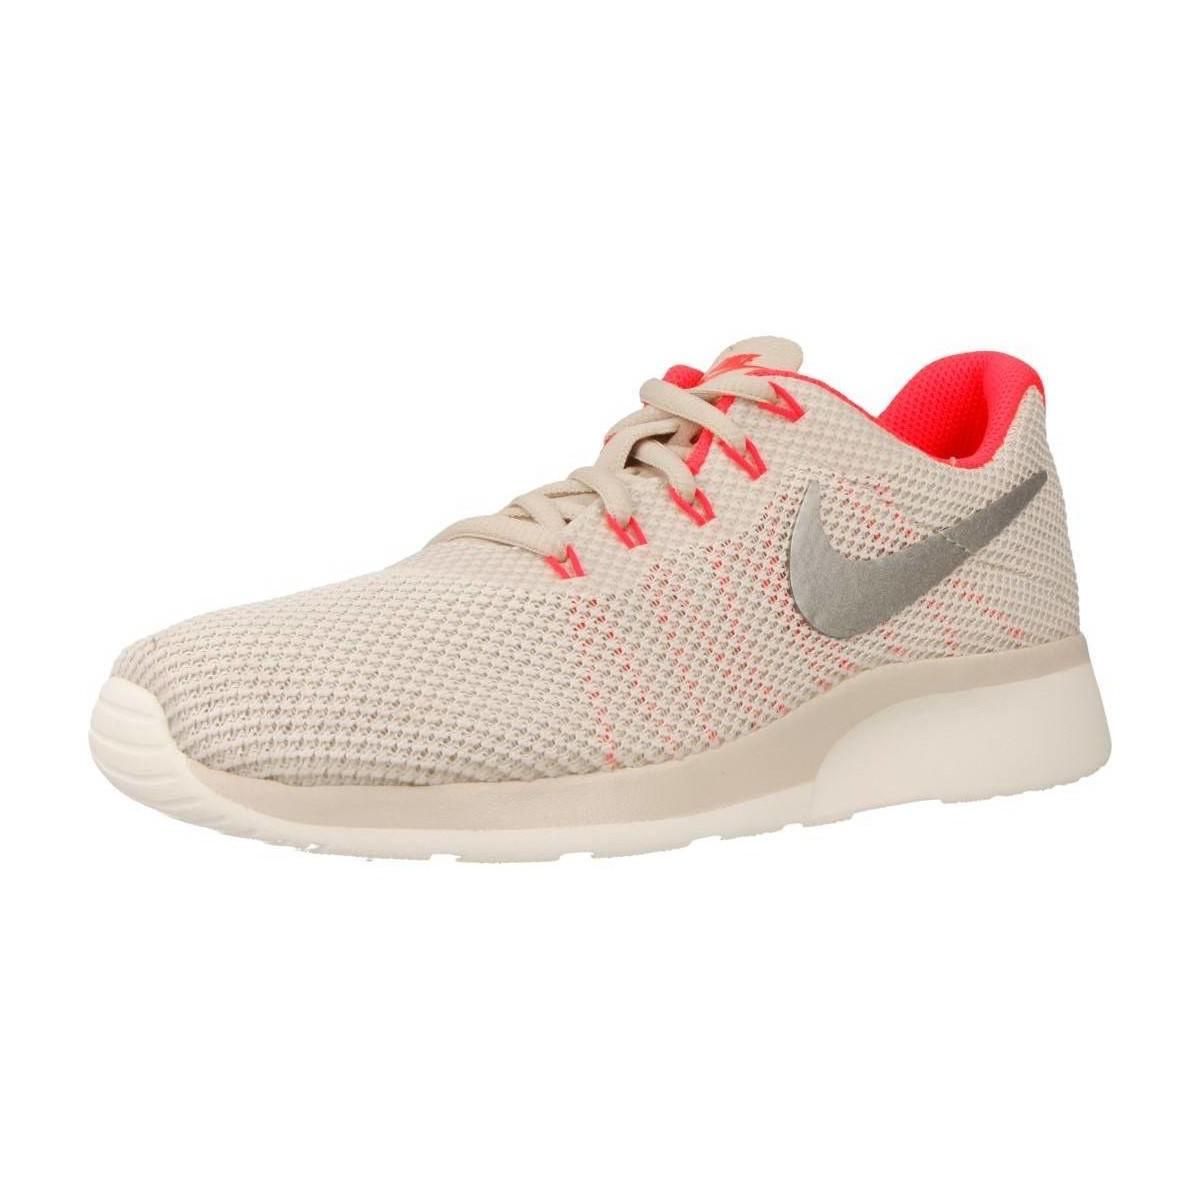 04c71f02cb9 Nike Tanjun Racer Women s Shoes (trainers) In Pink in Pink - Lyst